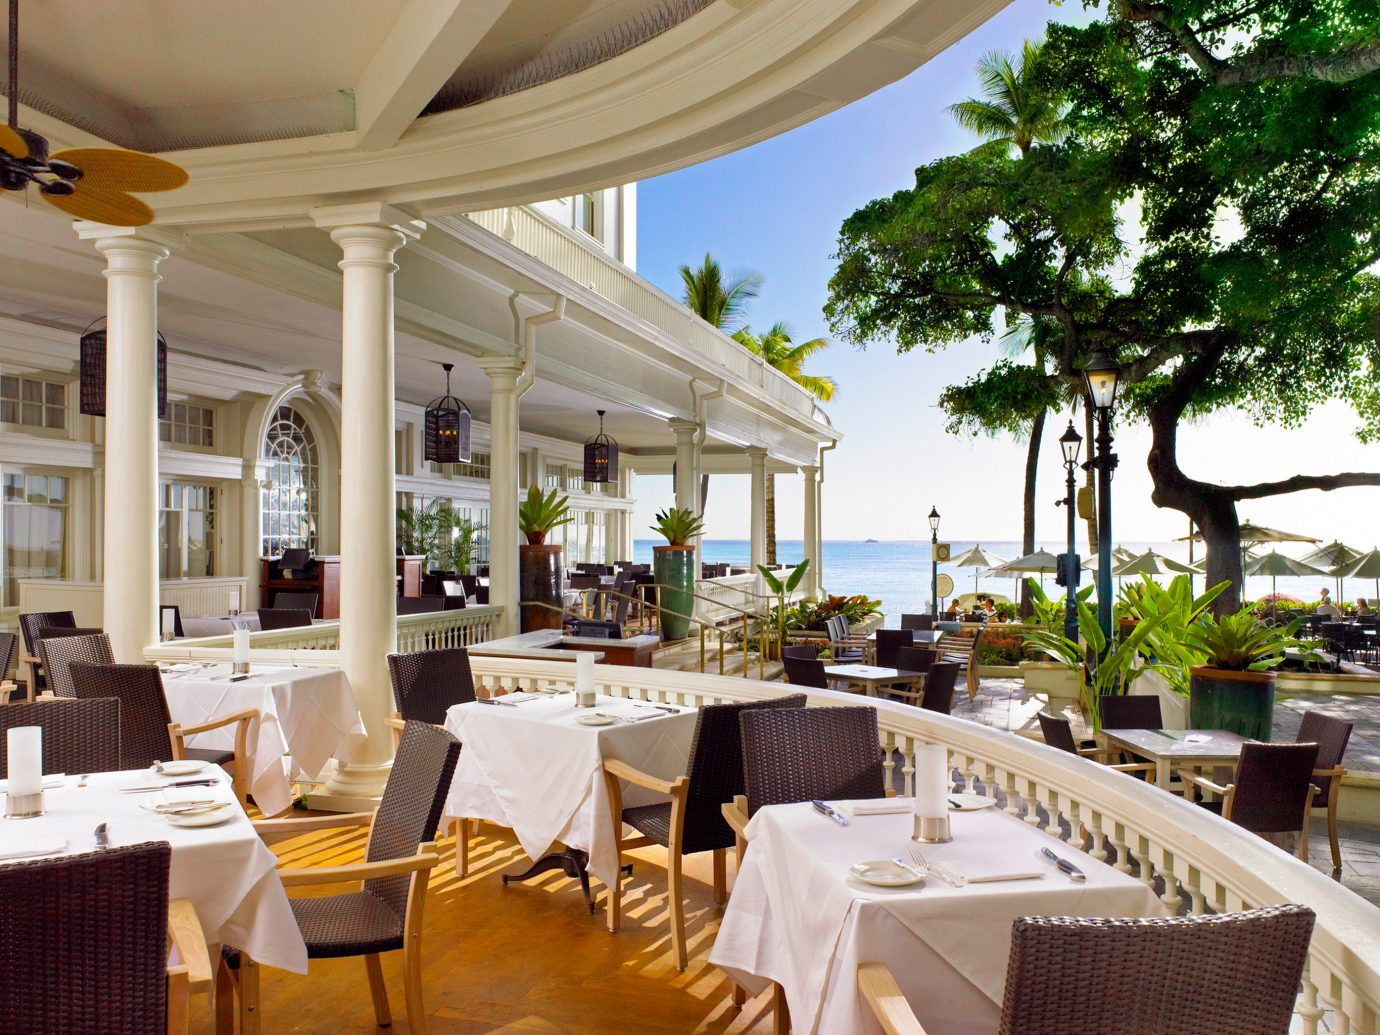 Boutique Hotels Dining Drink Eat Hawaii Honolulu Hotels Resort Scenic views table chair restaurant meal estate function hall palace Villa set furniture